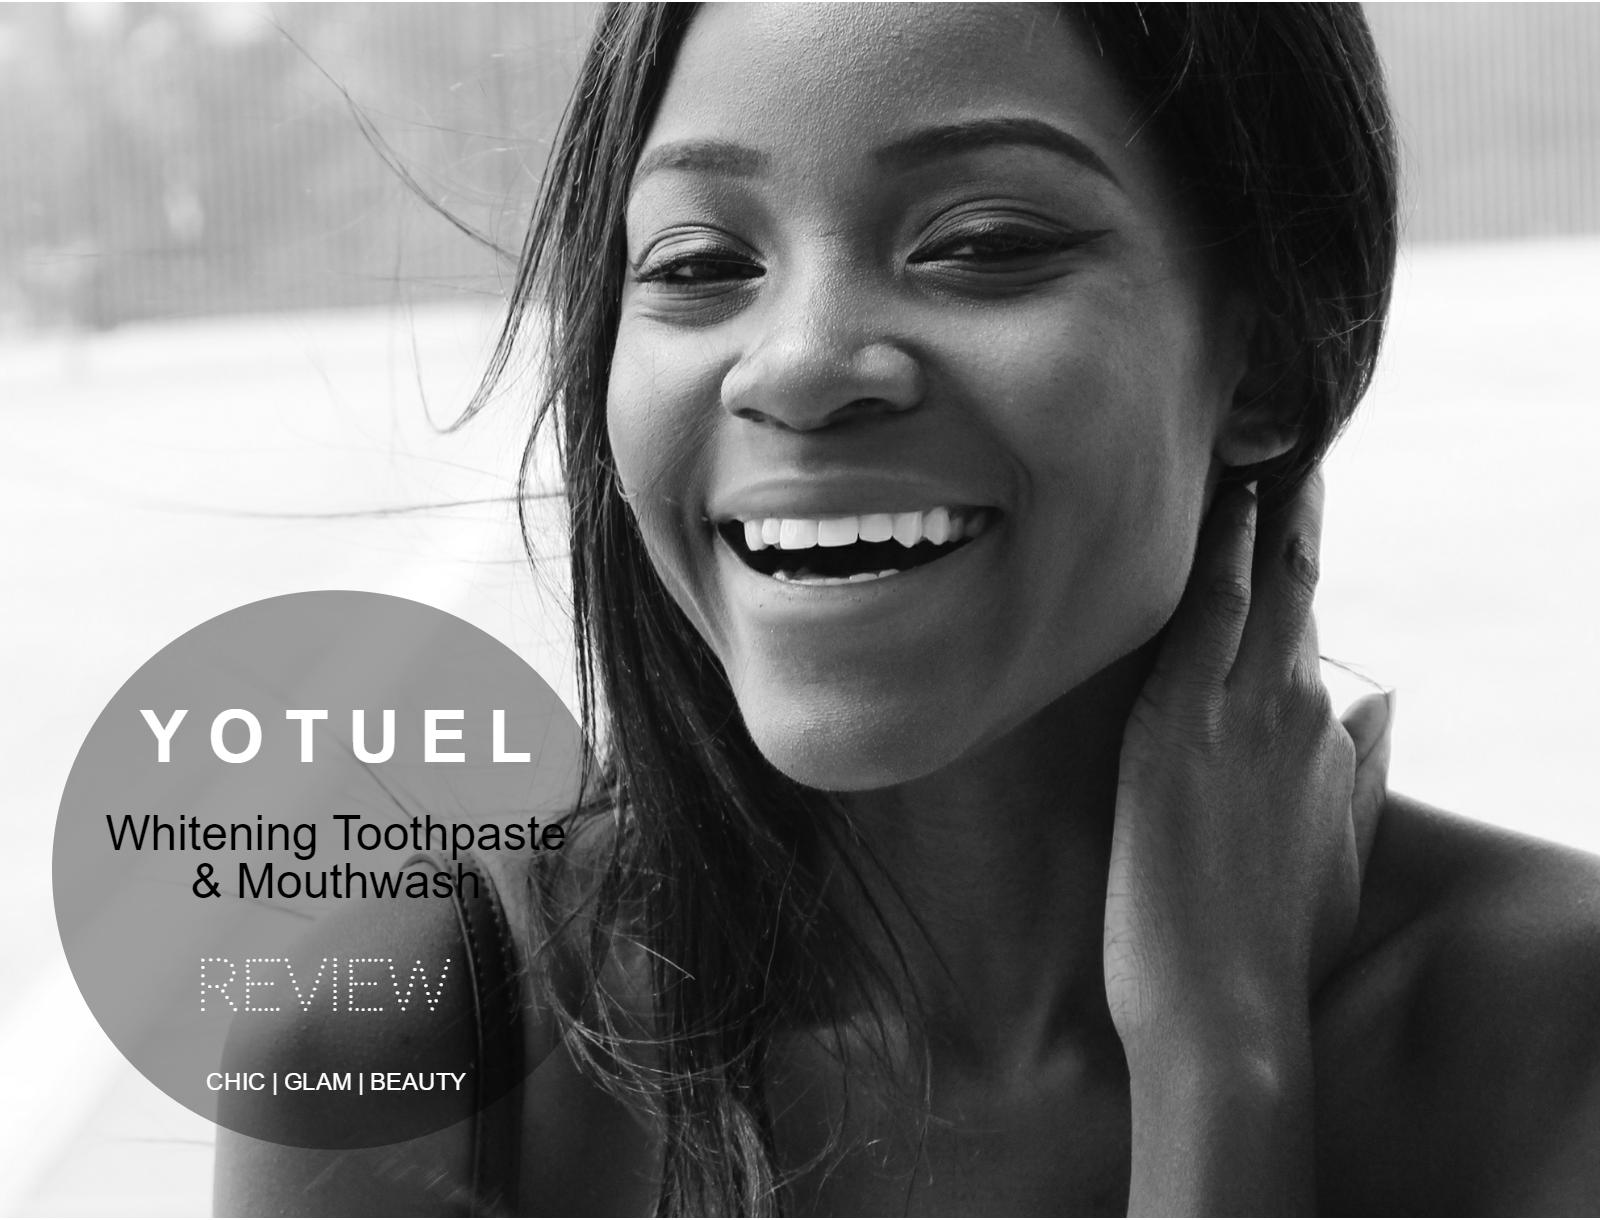 yotuel-toothpaste-review